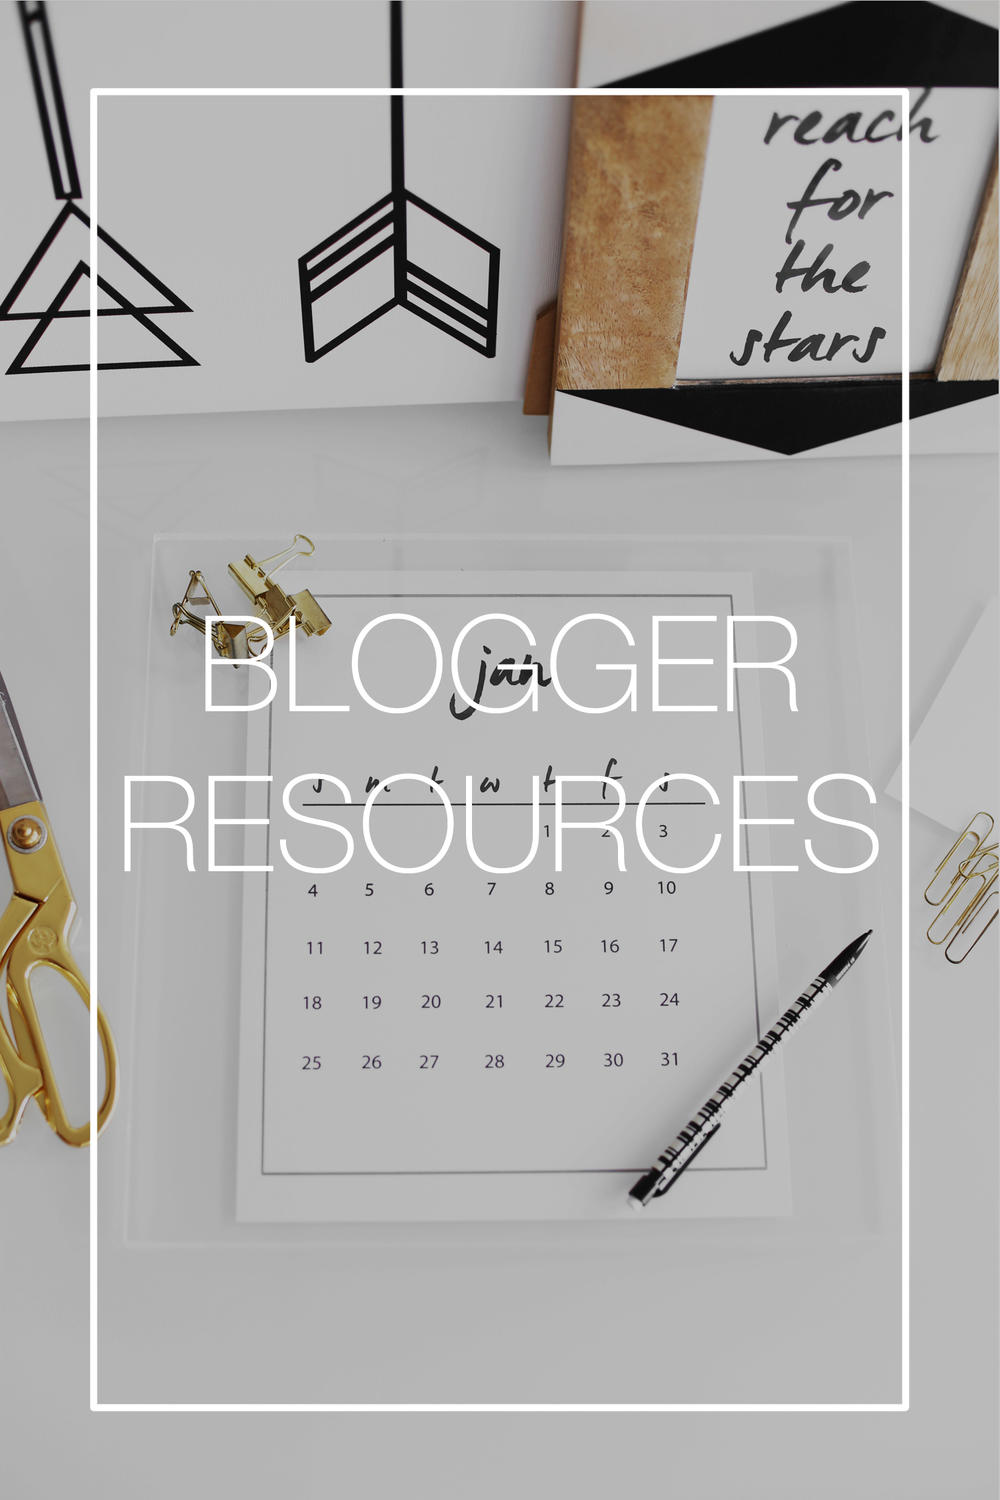 blogger resources